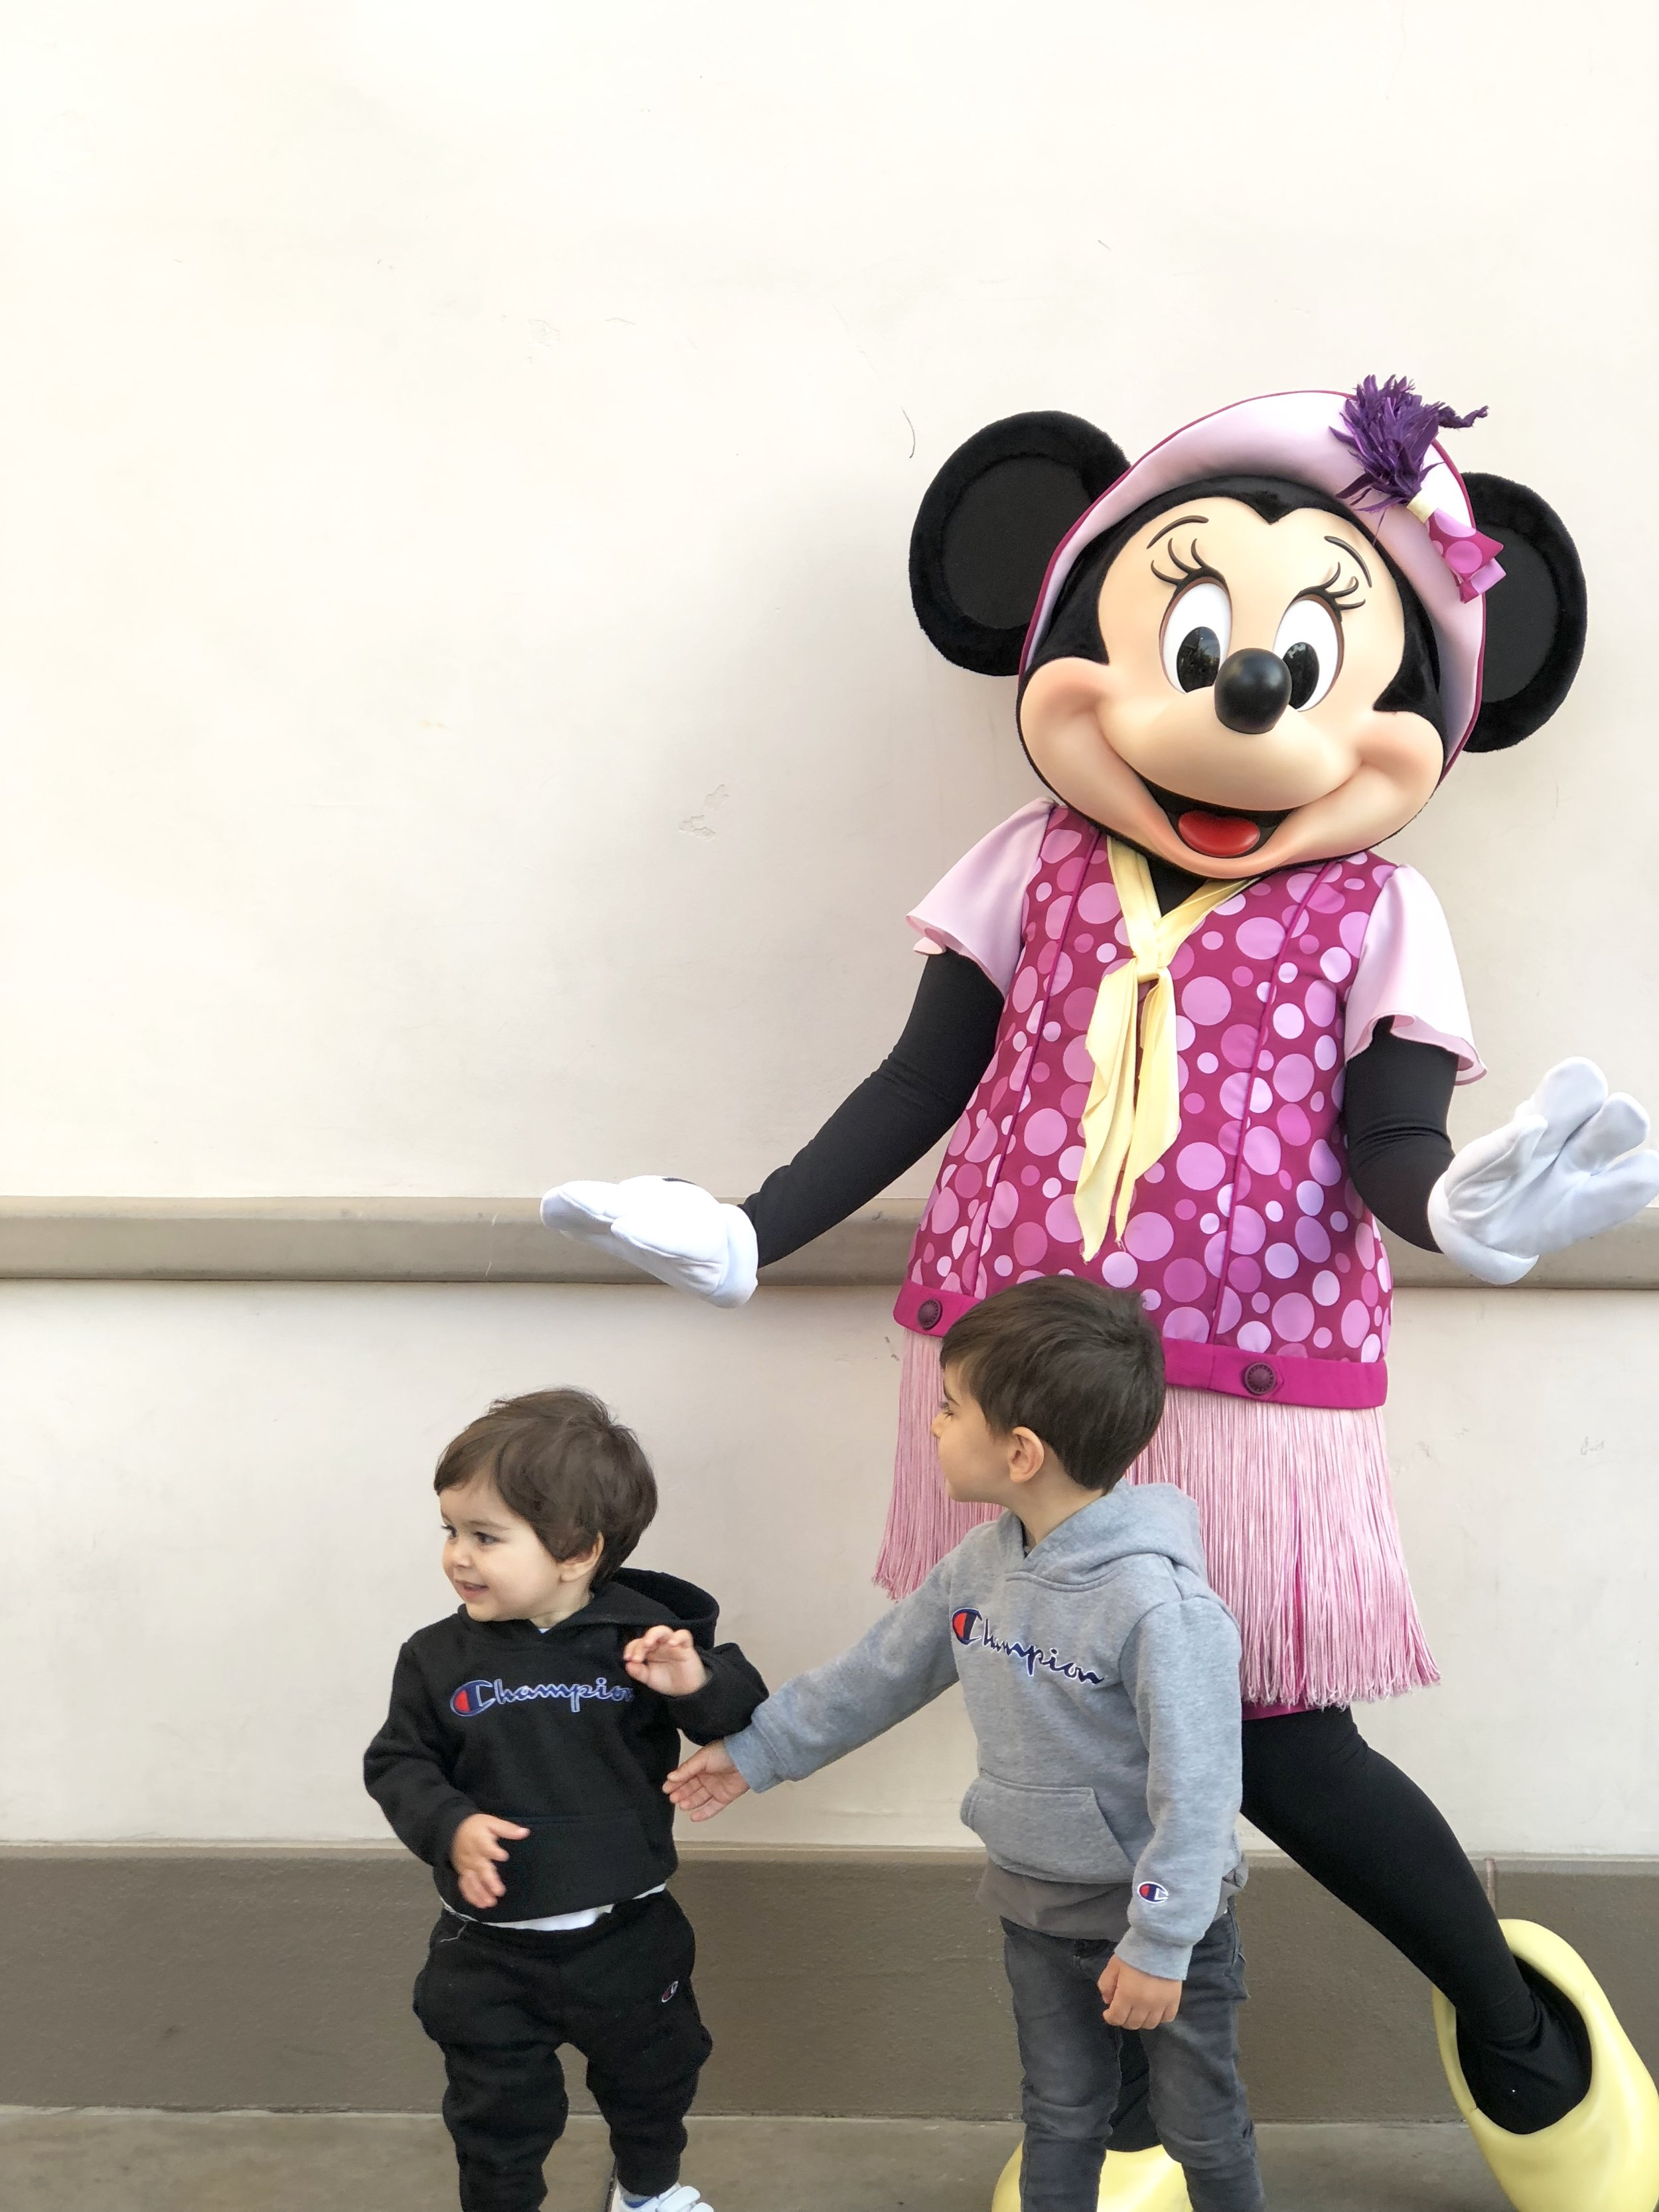 Ryan and Leo meet Minnie Mouse.